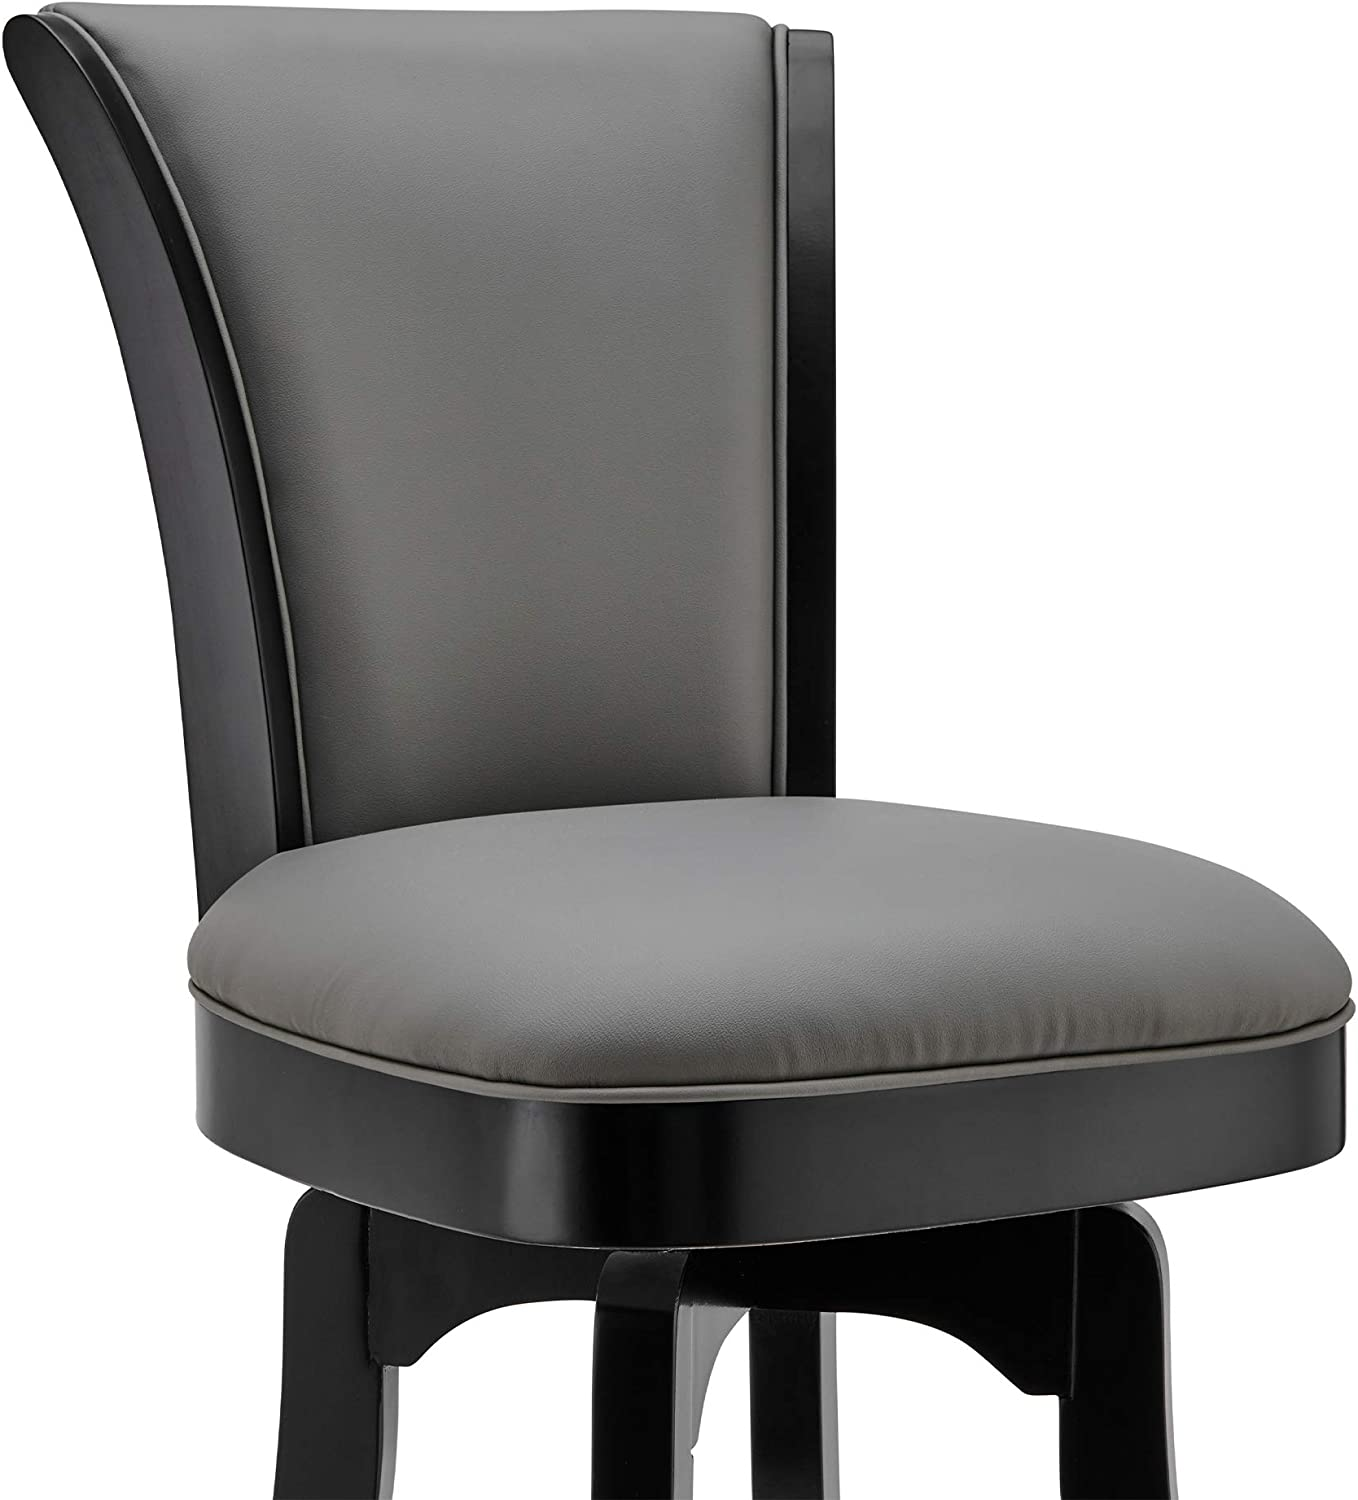 Raleigh 30 Bar Height Swivel Barstool in Black Finish and Gray Faux Leather